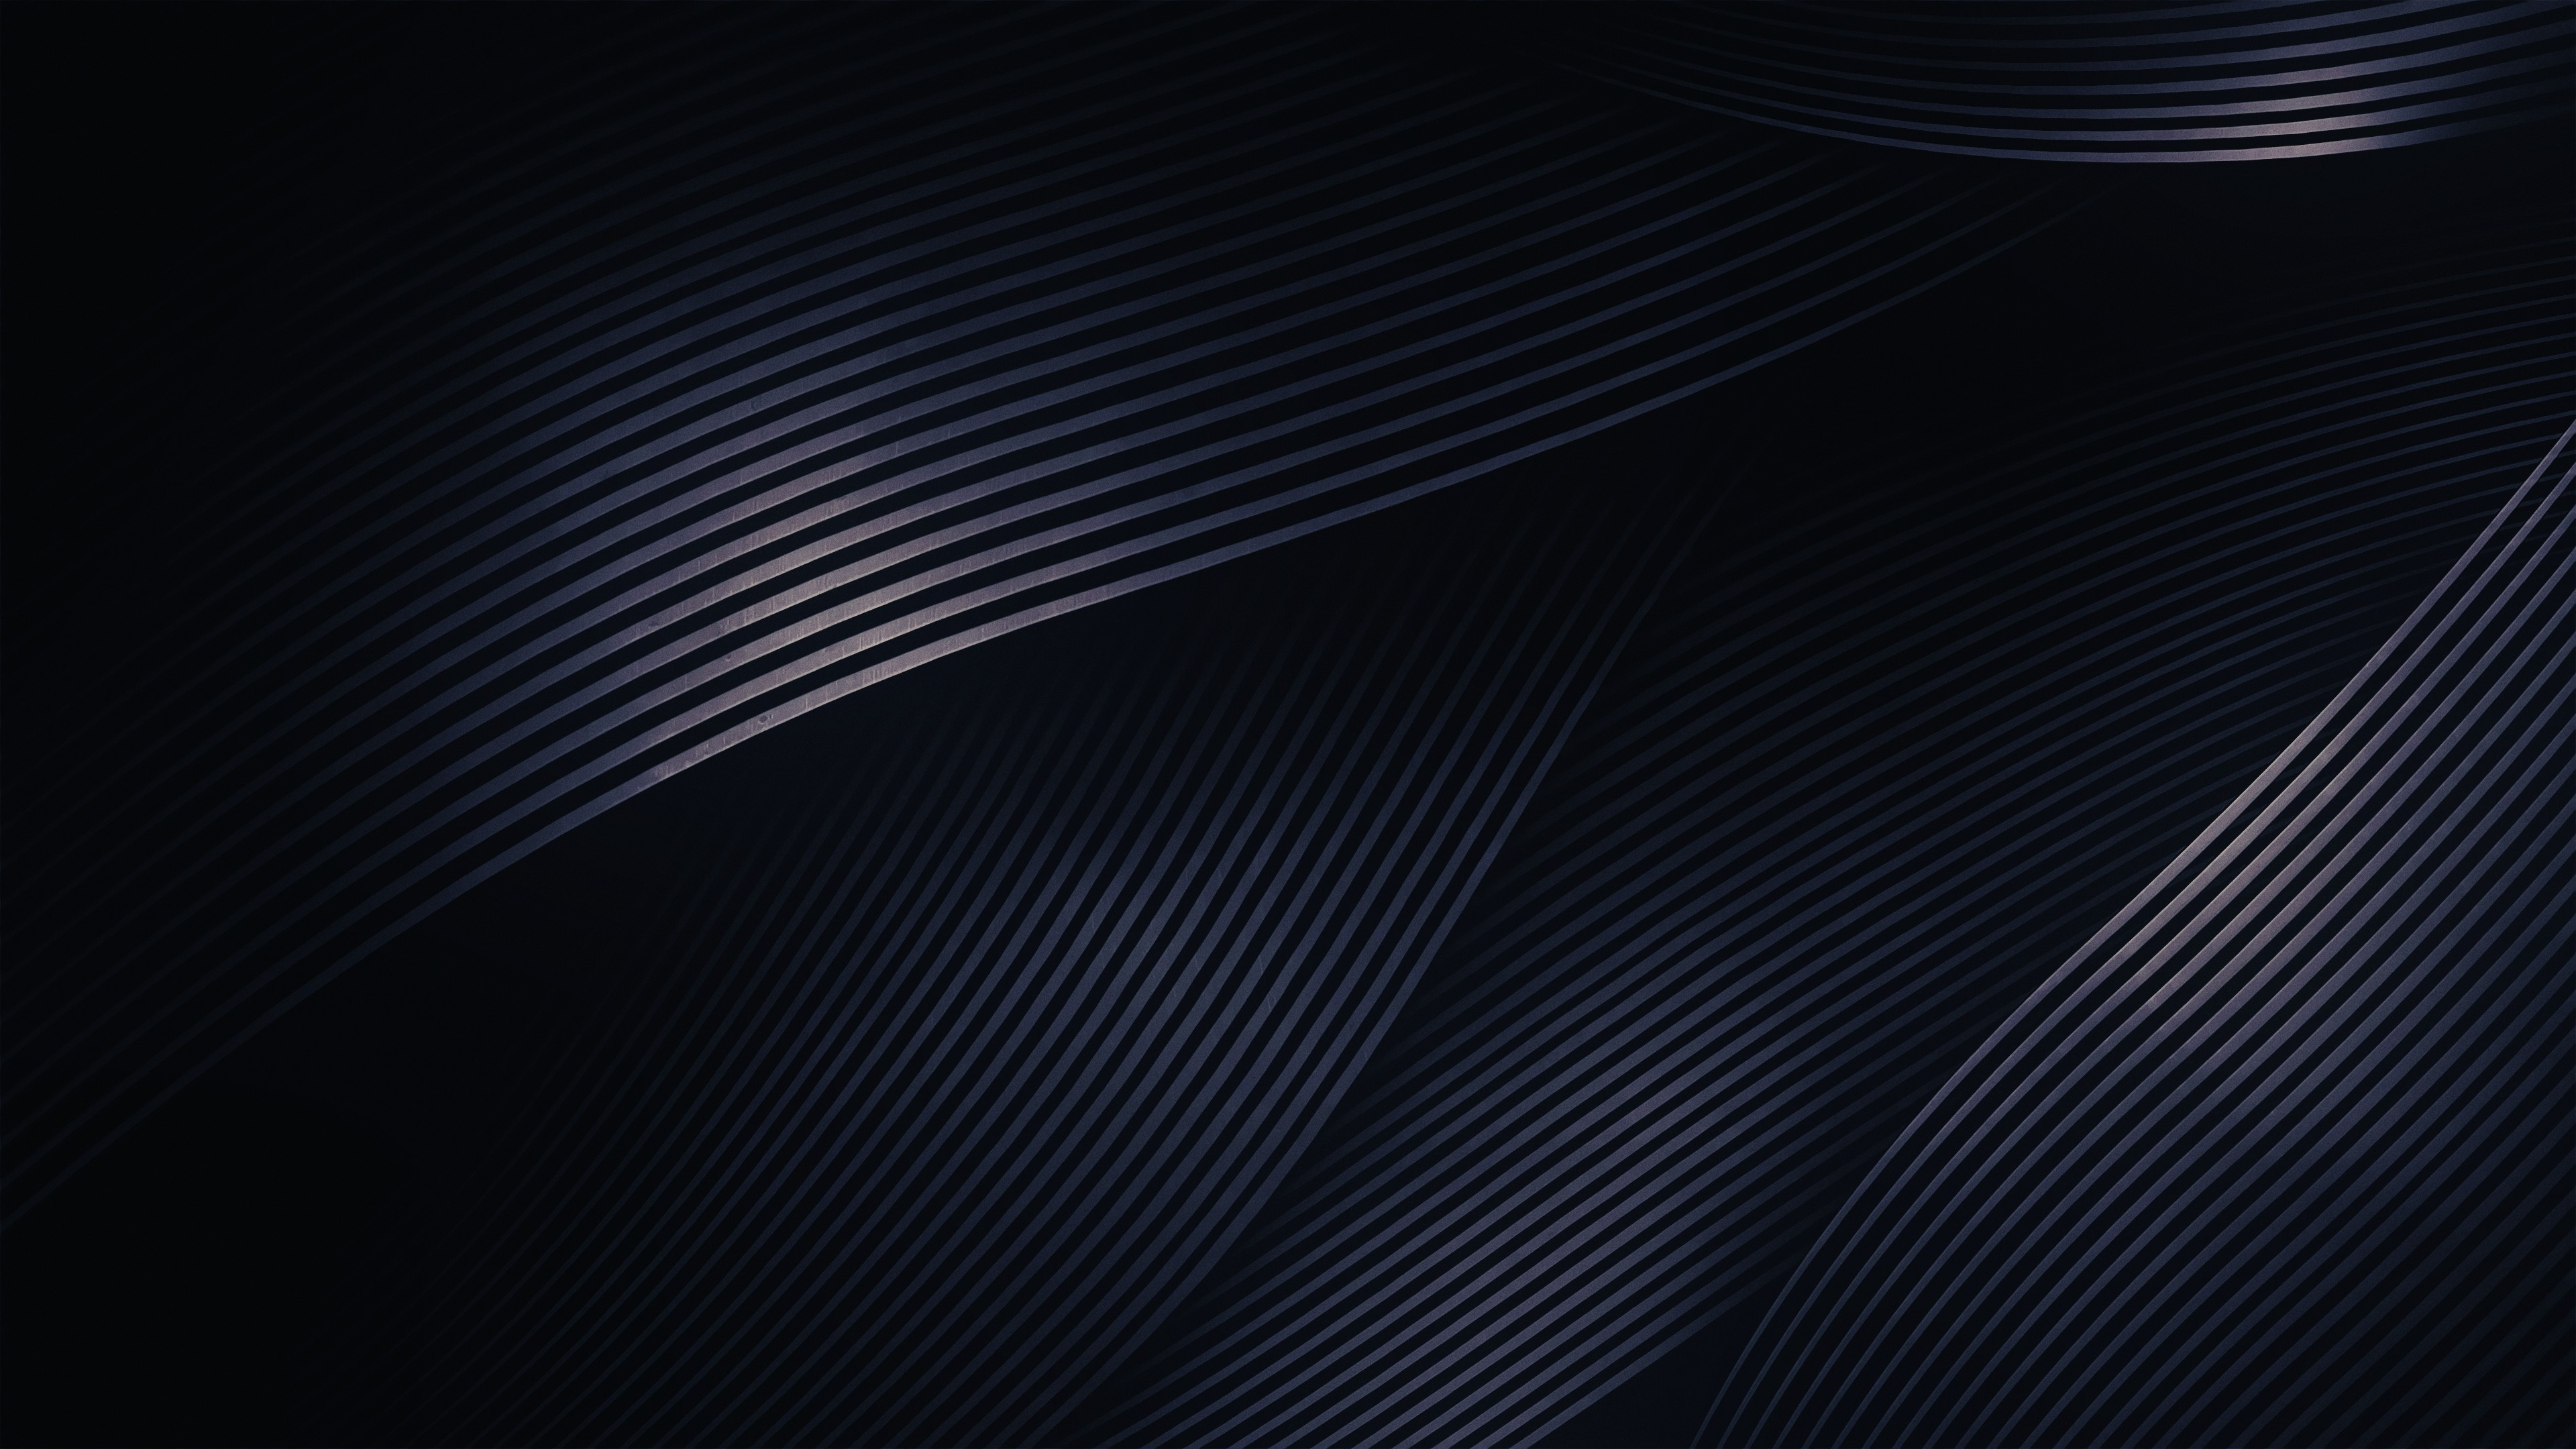 4k Dark Abstract: Abstract Dark Shapes Light 4k, HD Abstract, 4k Wallpapers